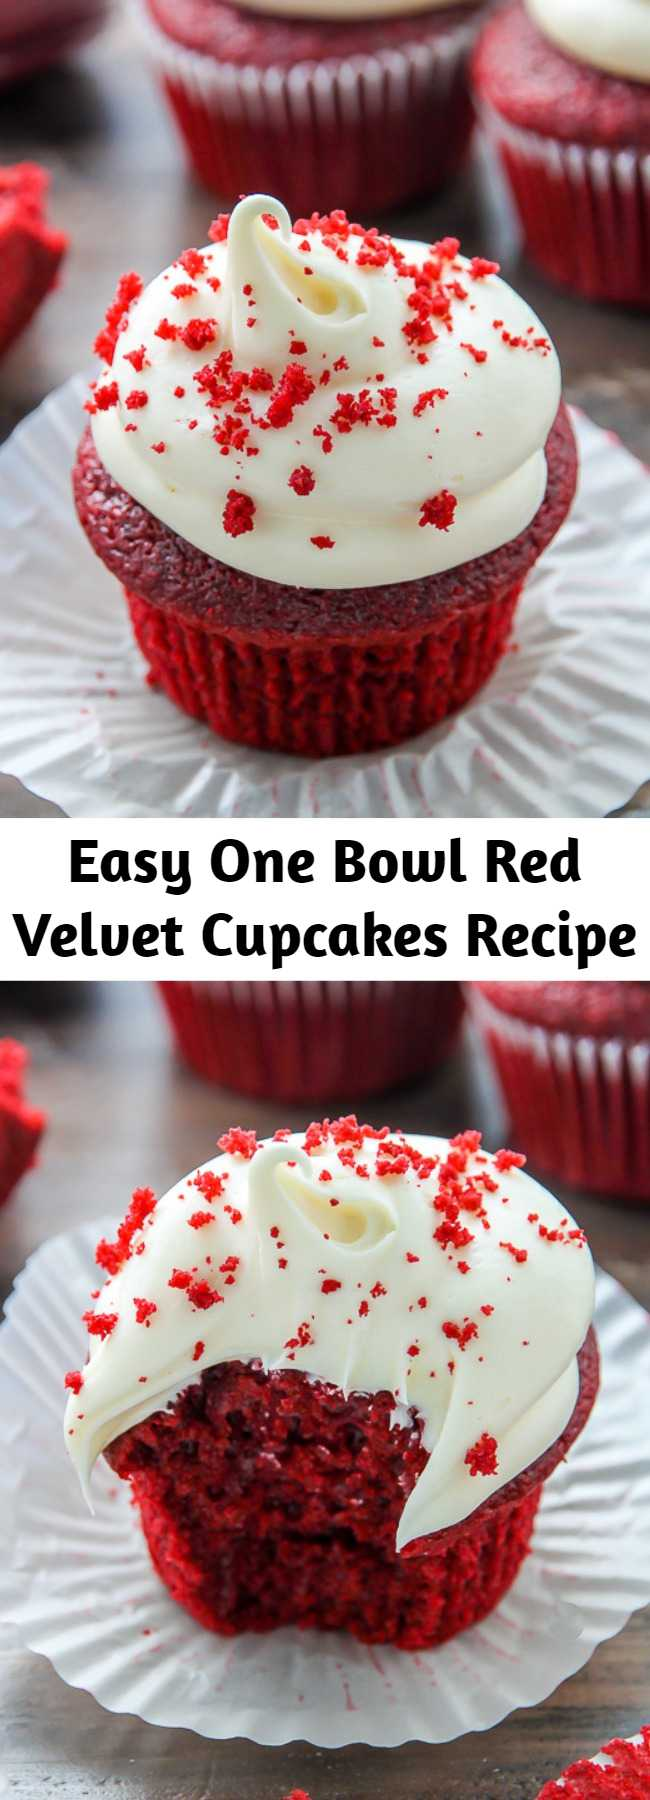 Easy One Bowl Red Velvet Cupcakes Recipe - If you like red velvet, you're going to LOVE these light and fluffy red velvet cupcakes! Classic red velvet cupcakes topped with luscious cream cheese frosting! Made in just one bowl, these are easy enough to whip up any day of the week. They're so delicious!